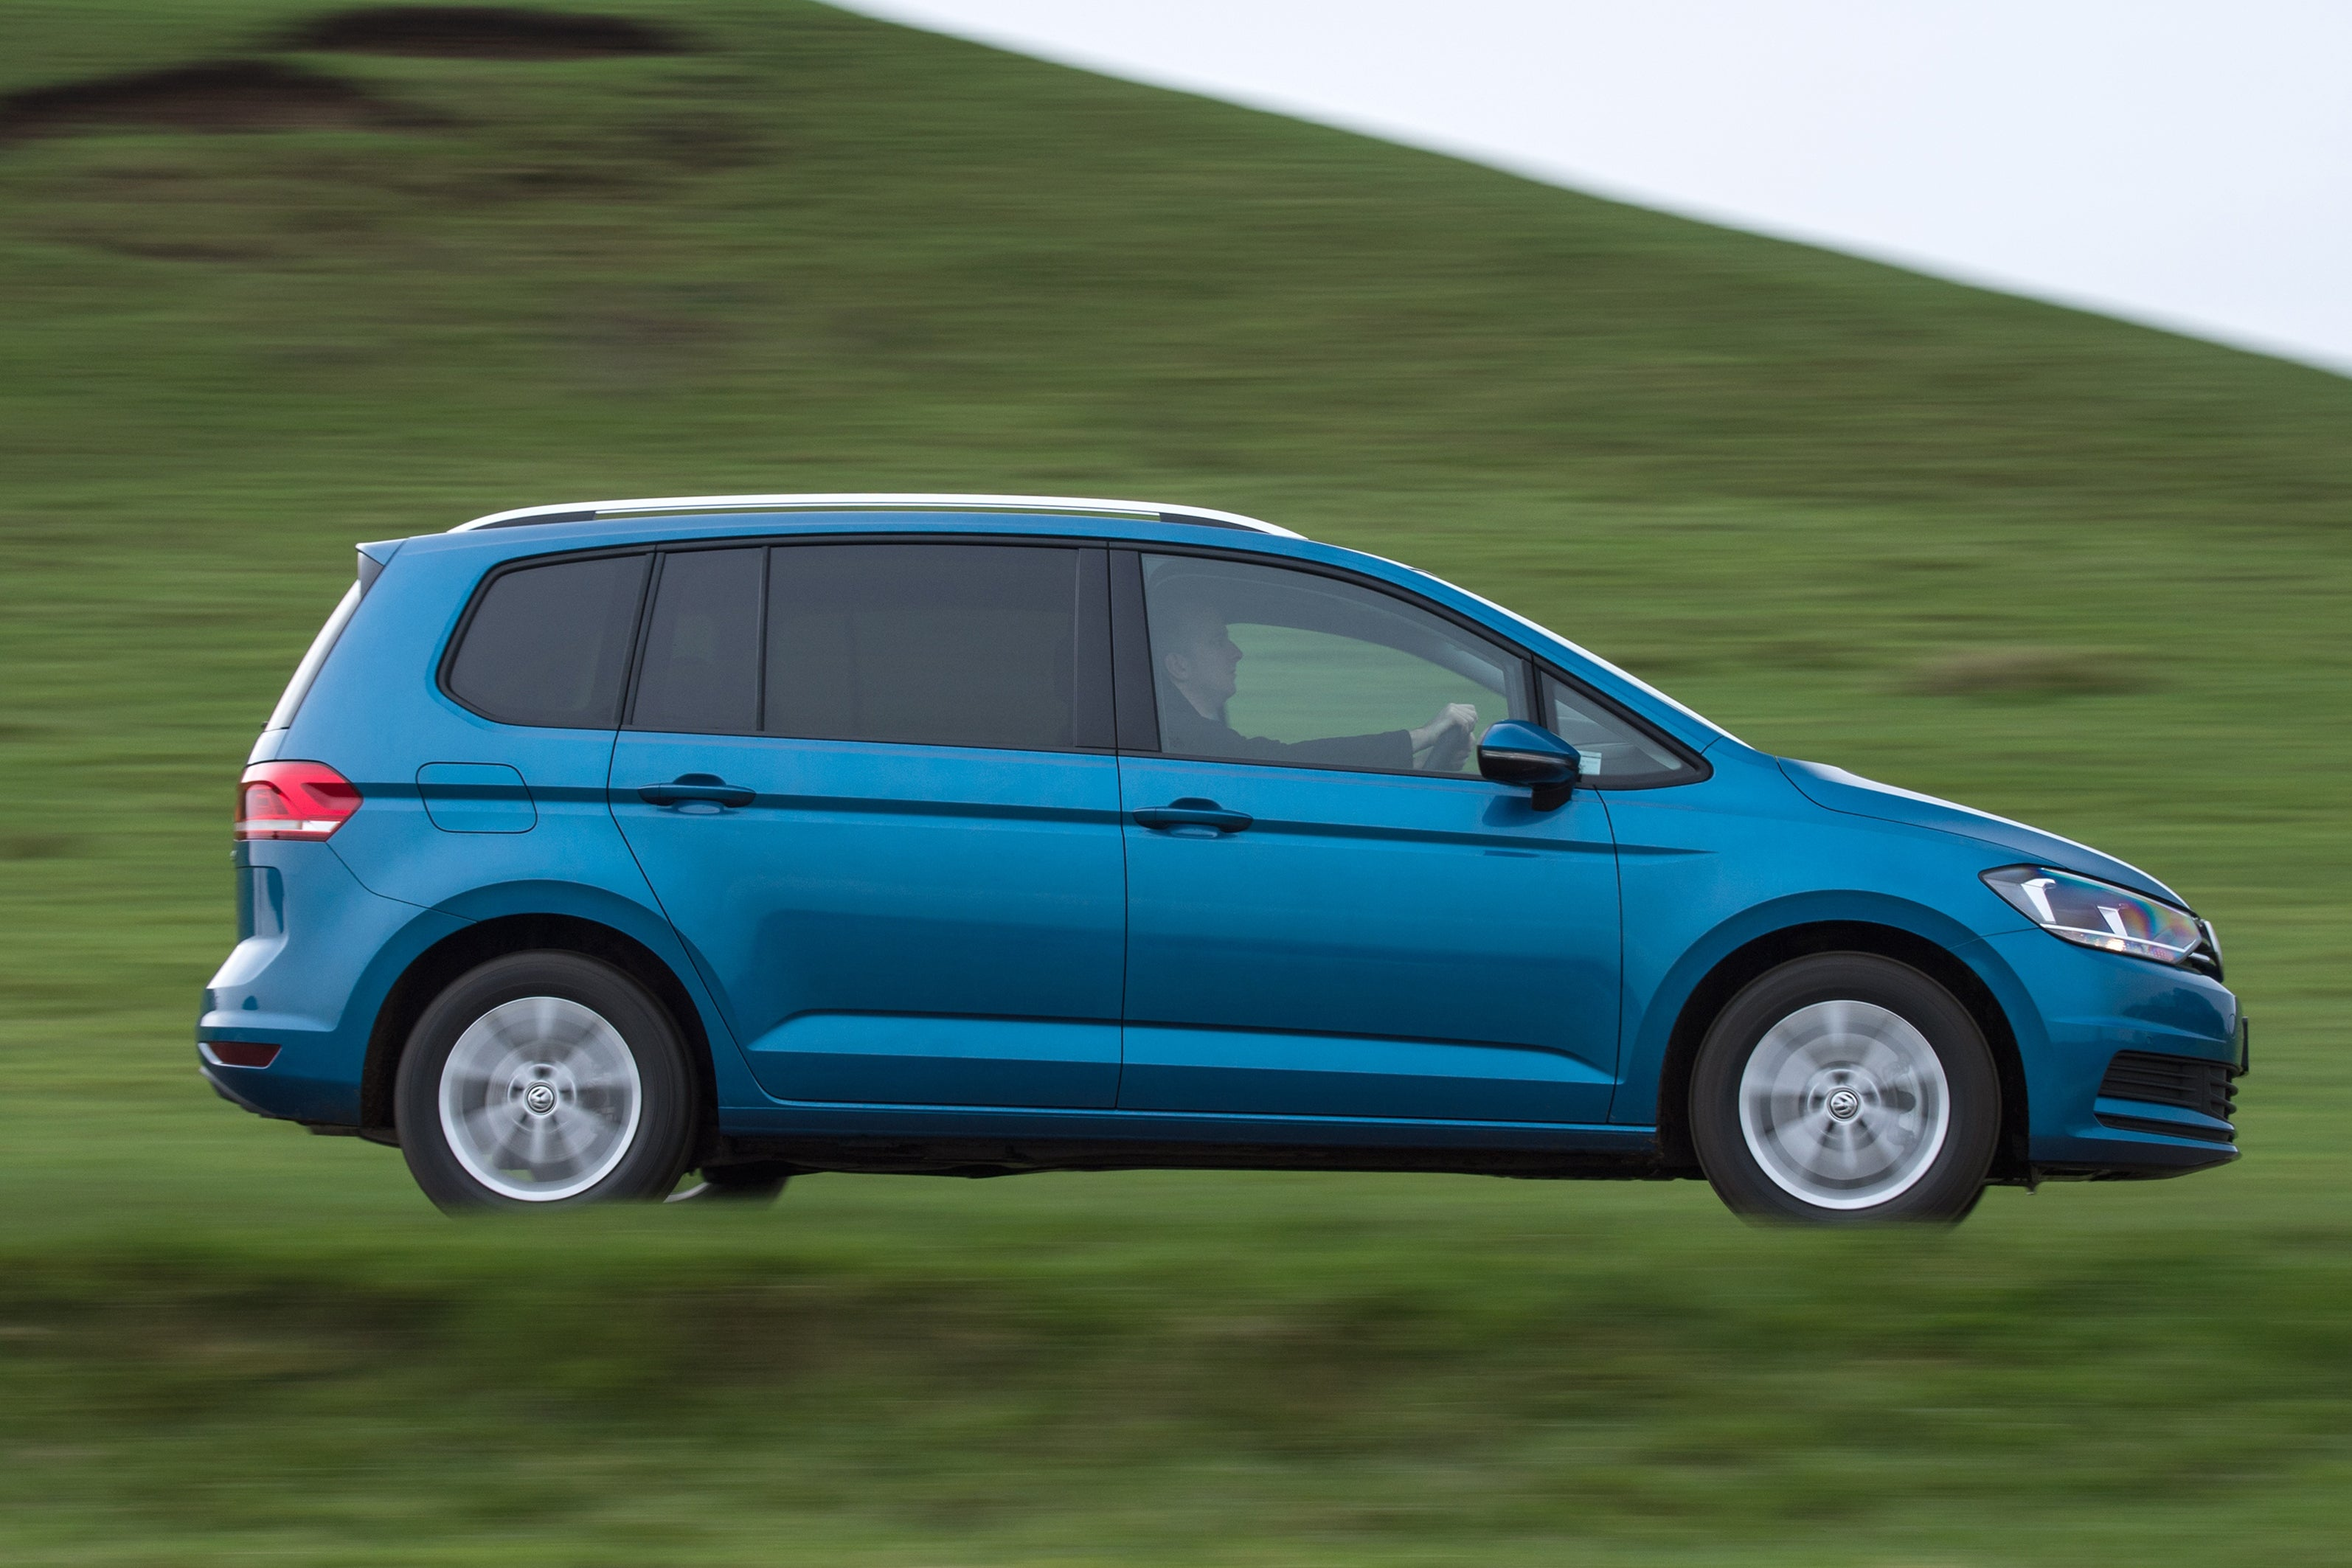 Volkswagen Touran driving side